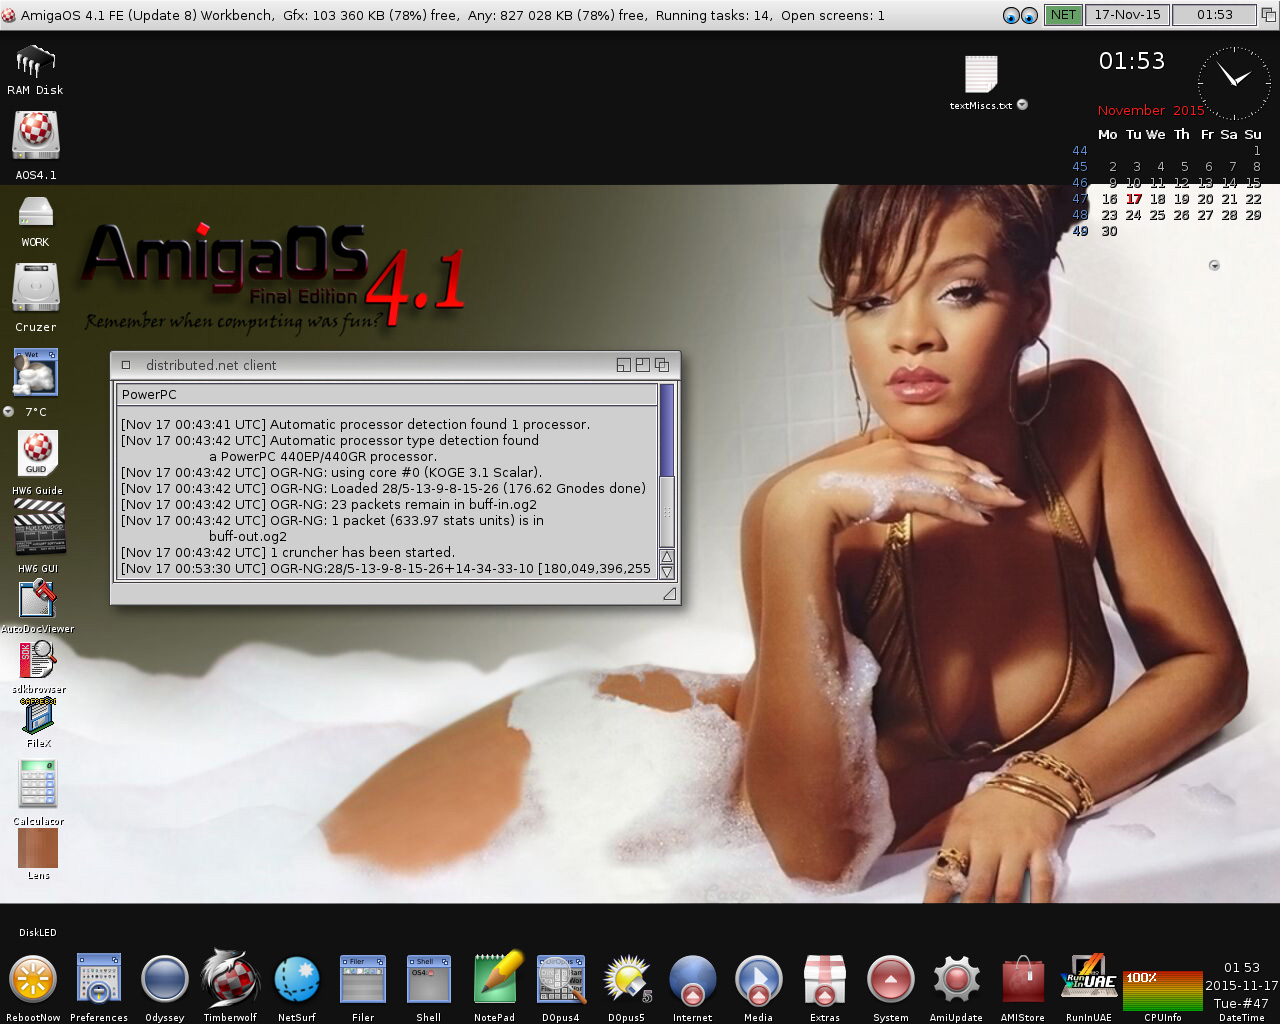 AmigaOS 4.1 FE-Rihanna,distributed.net client